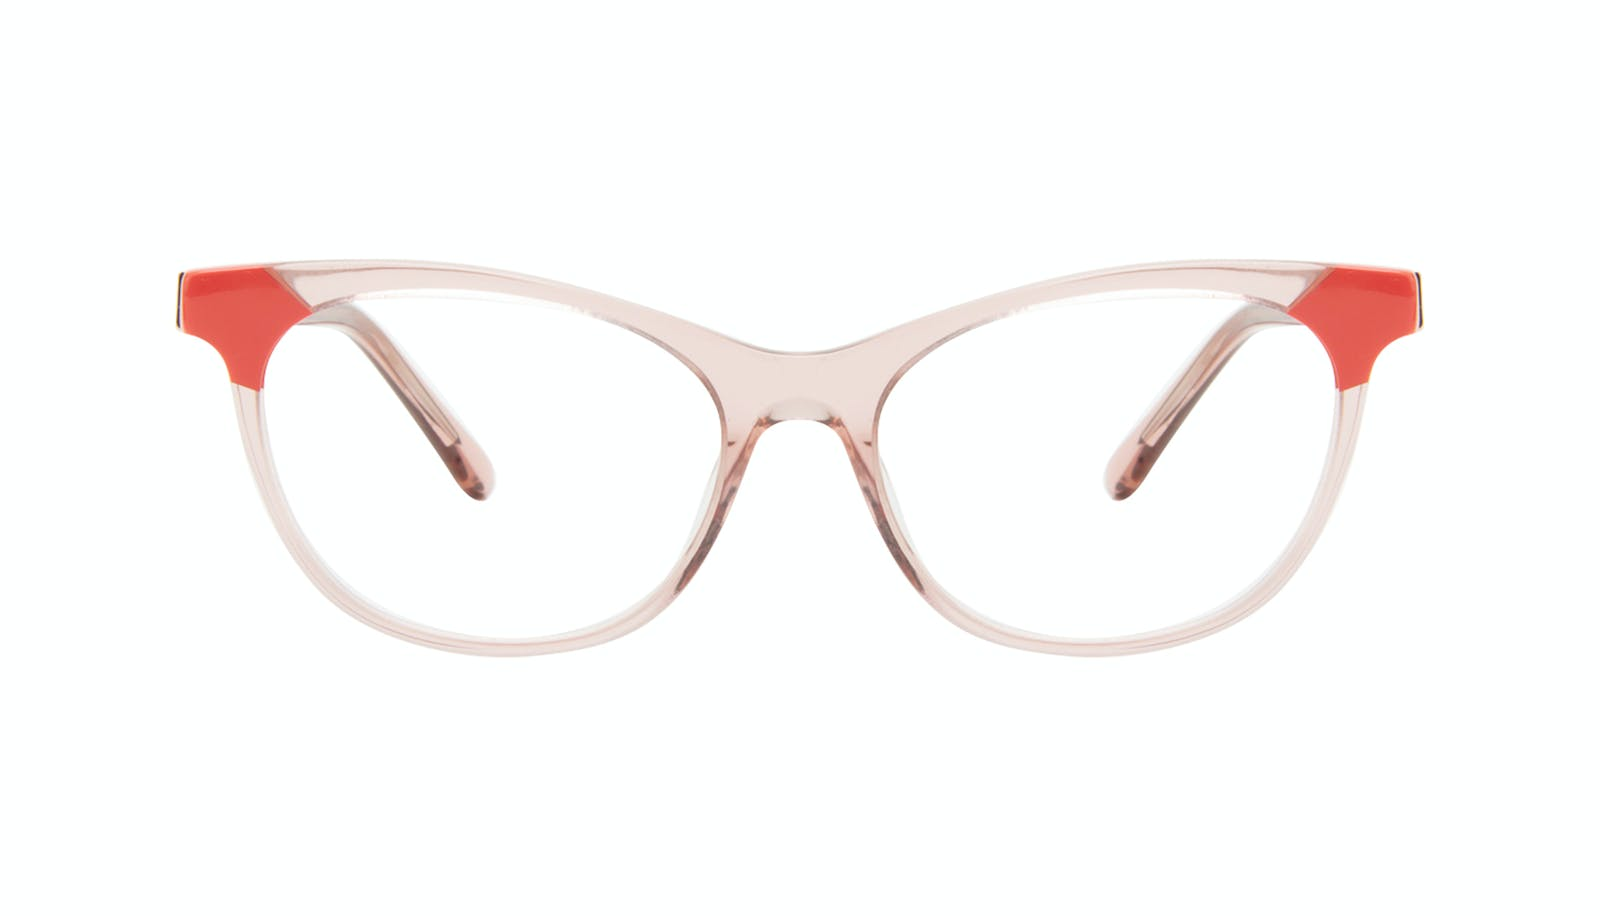 67bb4e4f3c Affordable Fashion Glasses Cat Eye Eyeglasses Women Witty Pink Coral